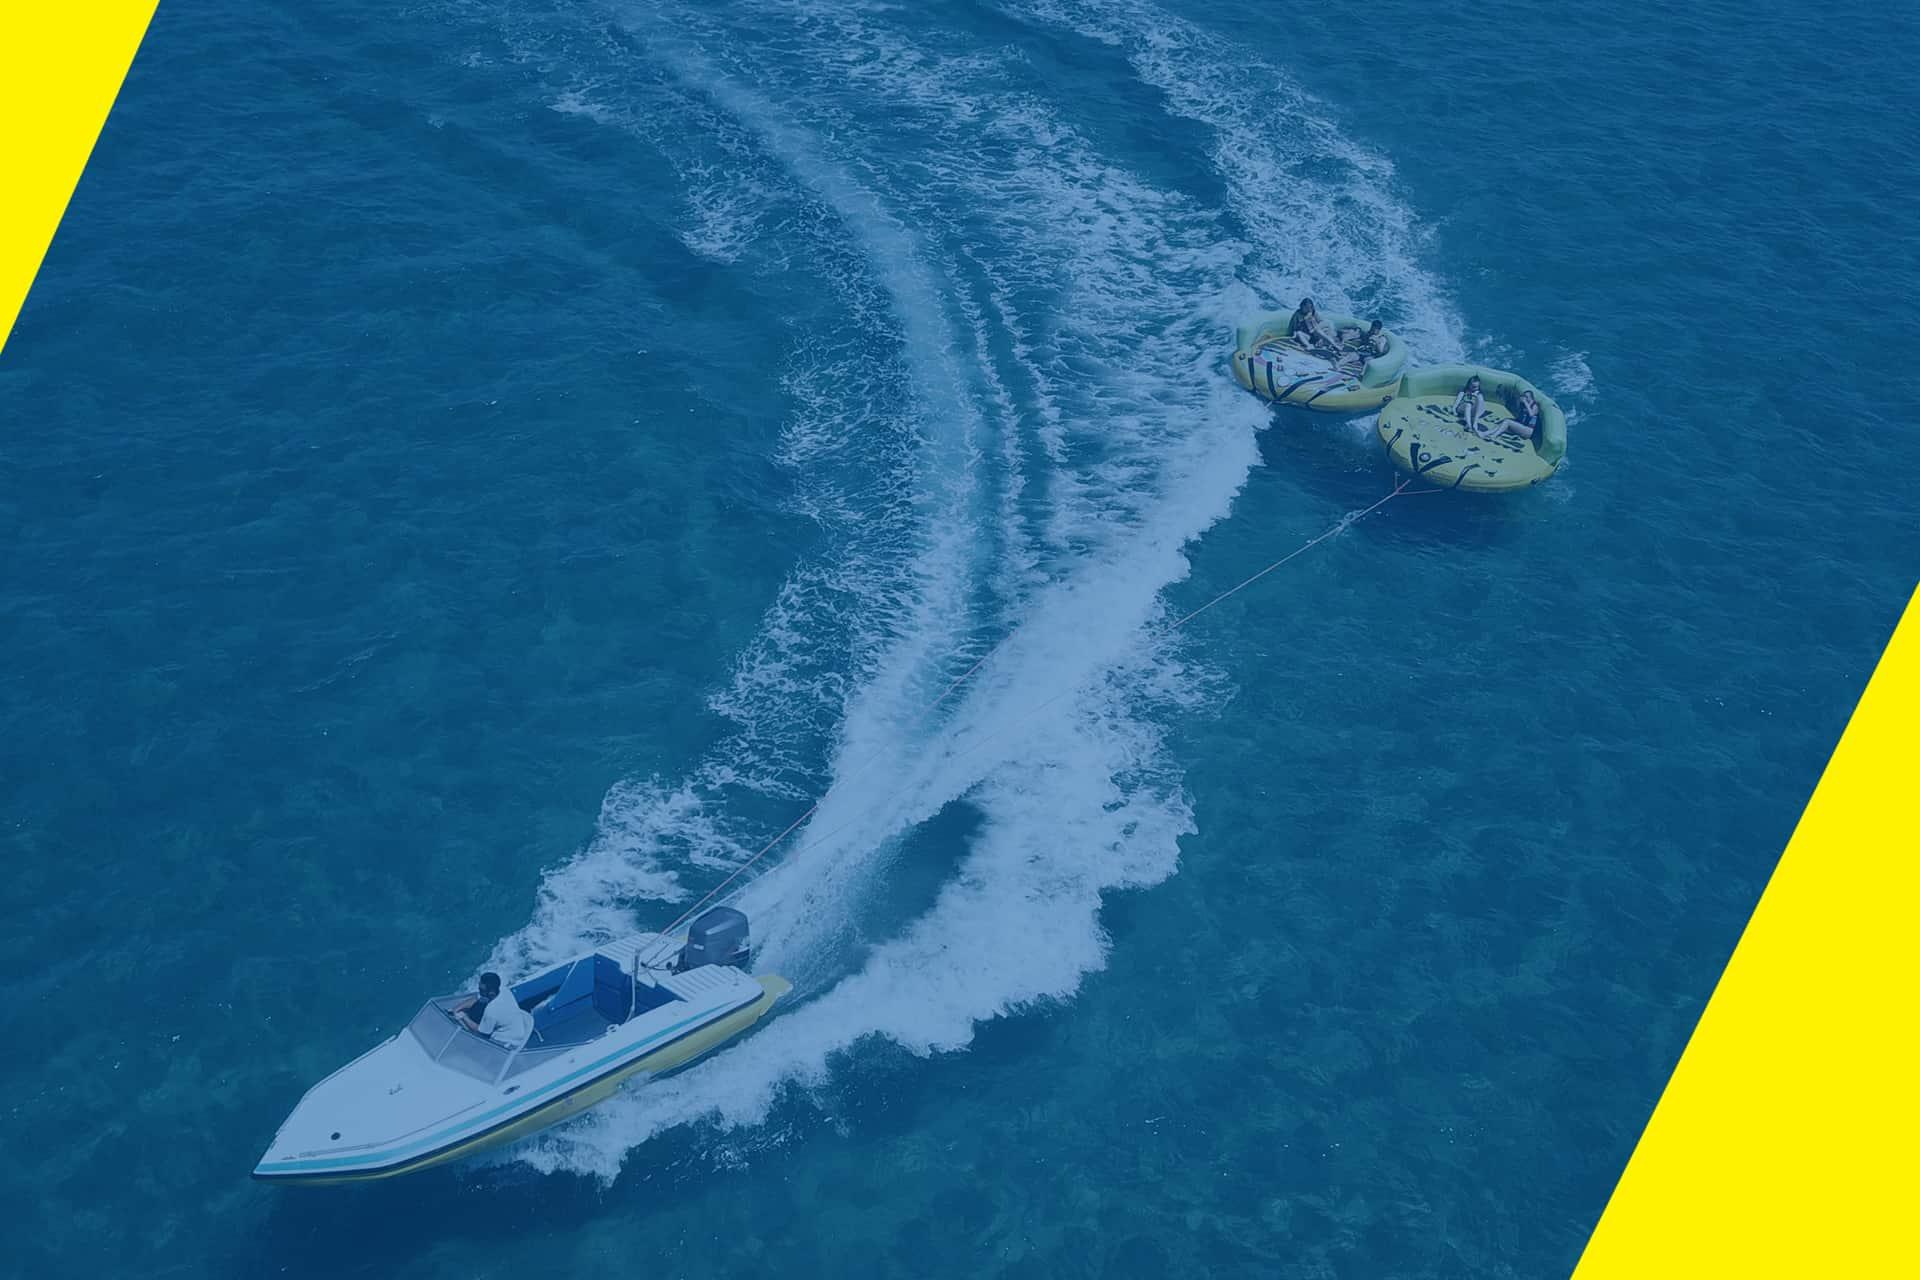 wd40 products for boats and watesports1